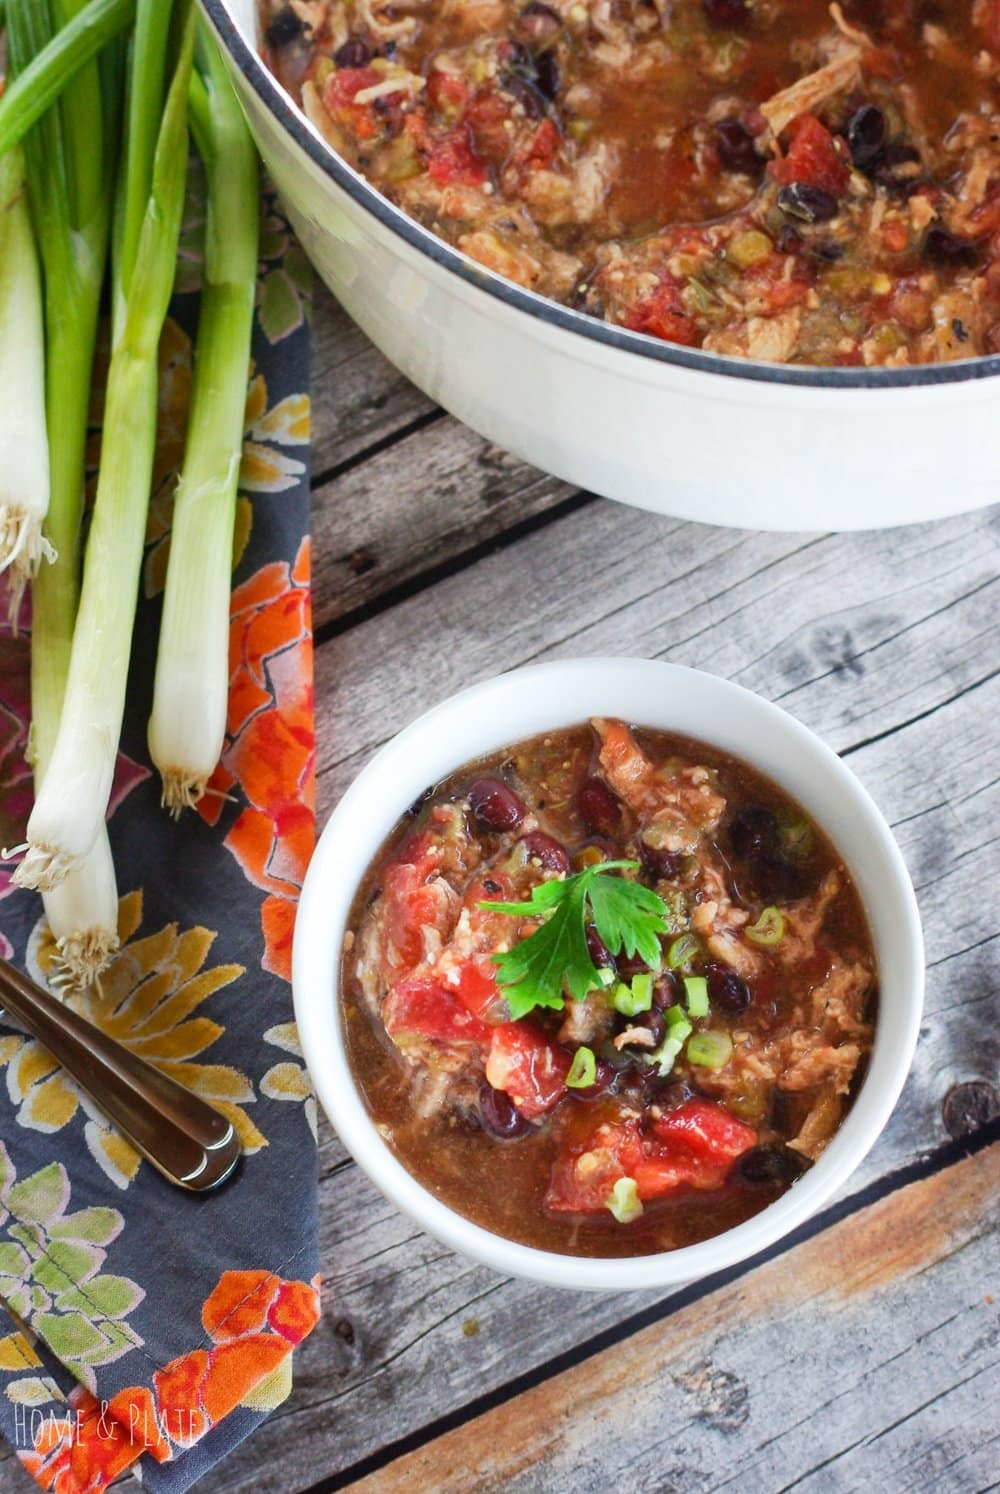 Tex-Mex Pork Stew